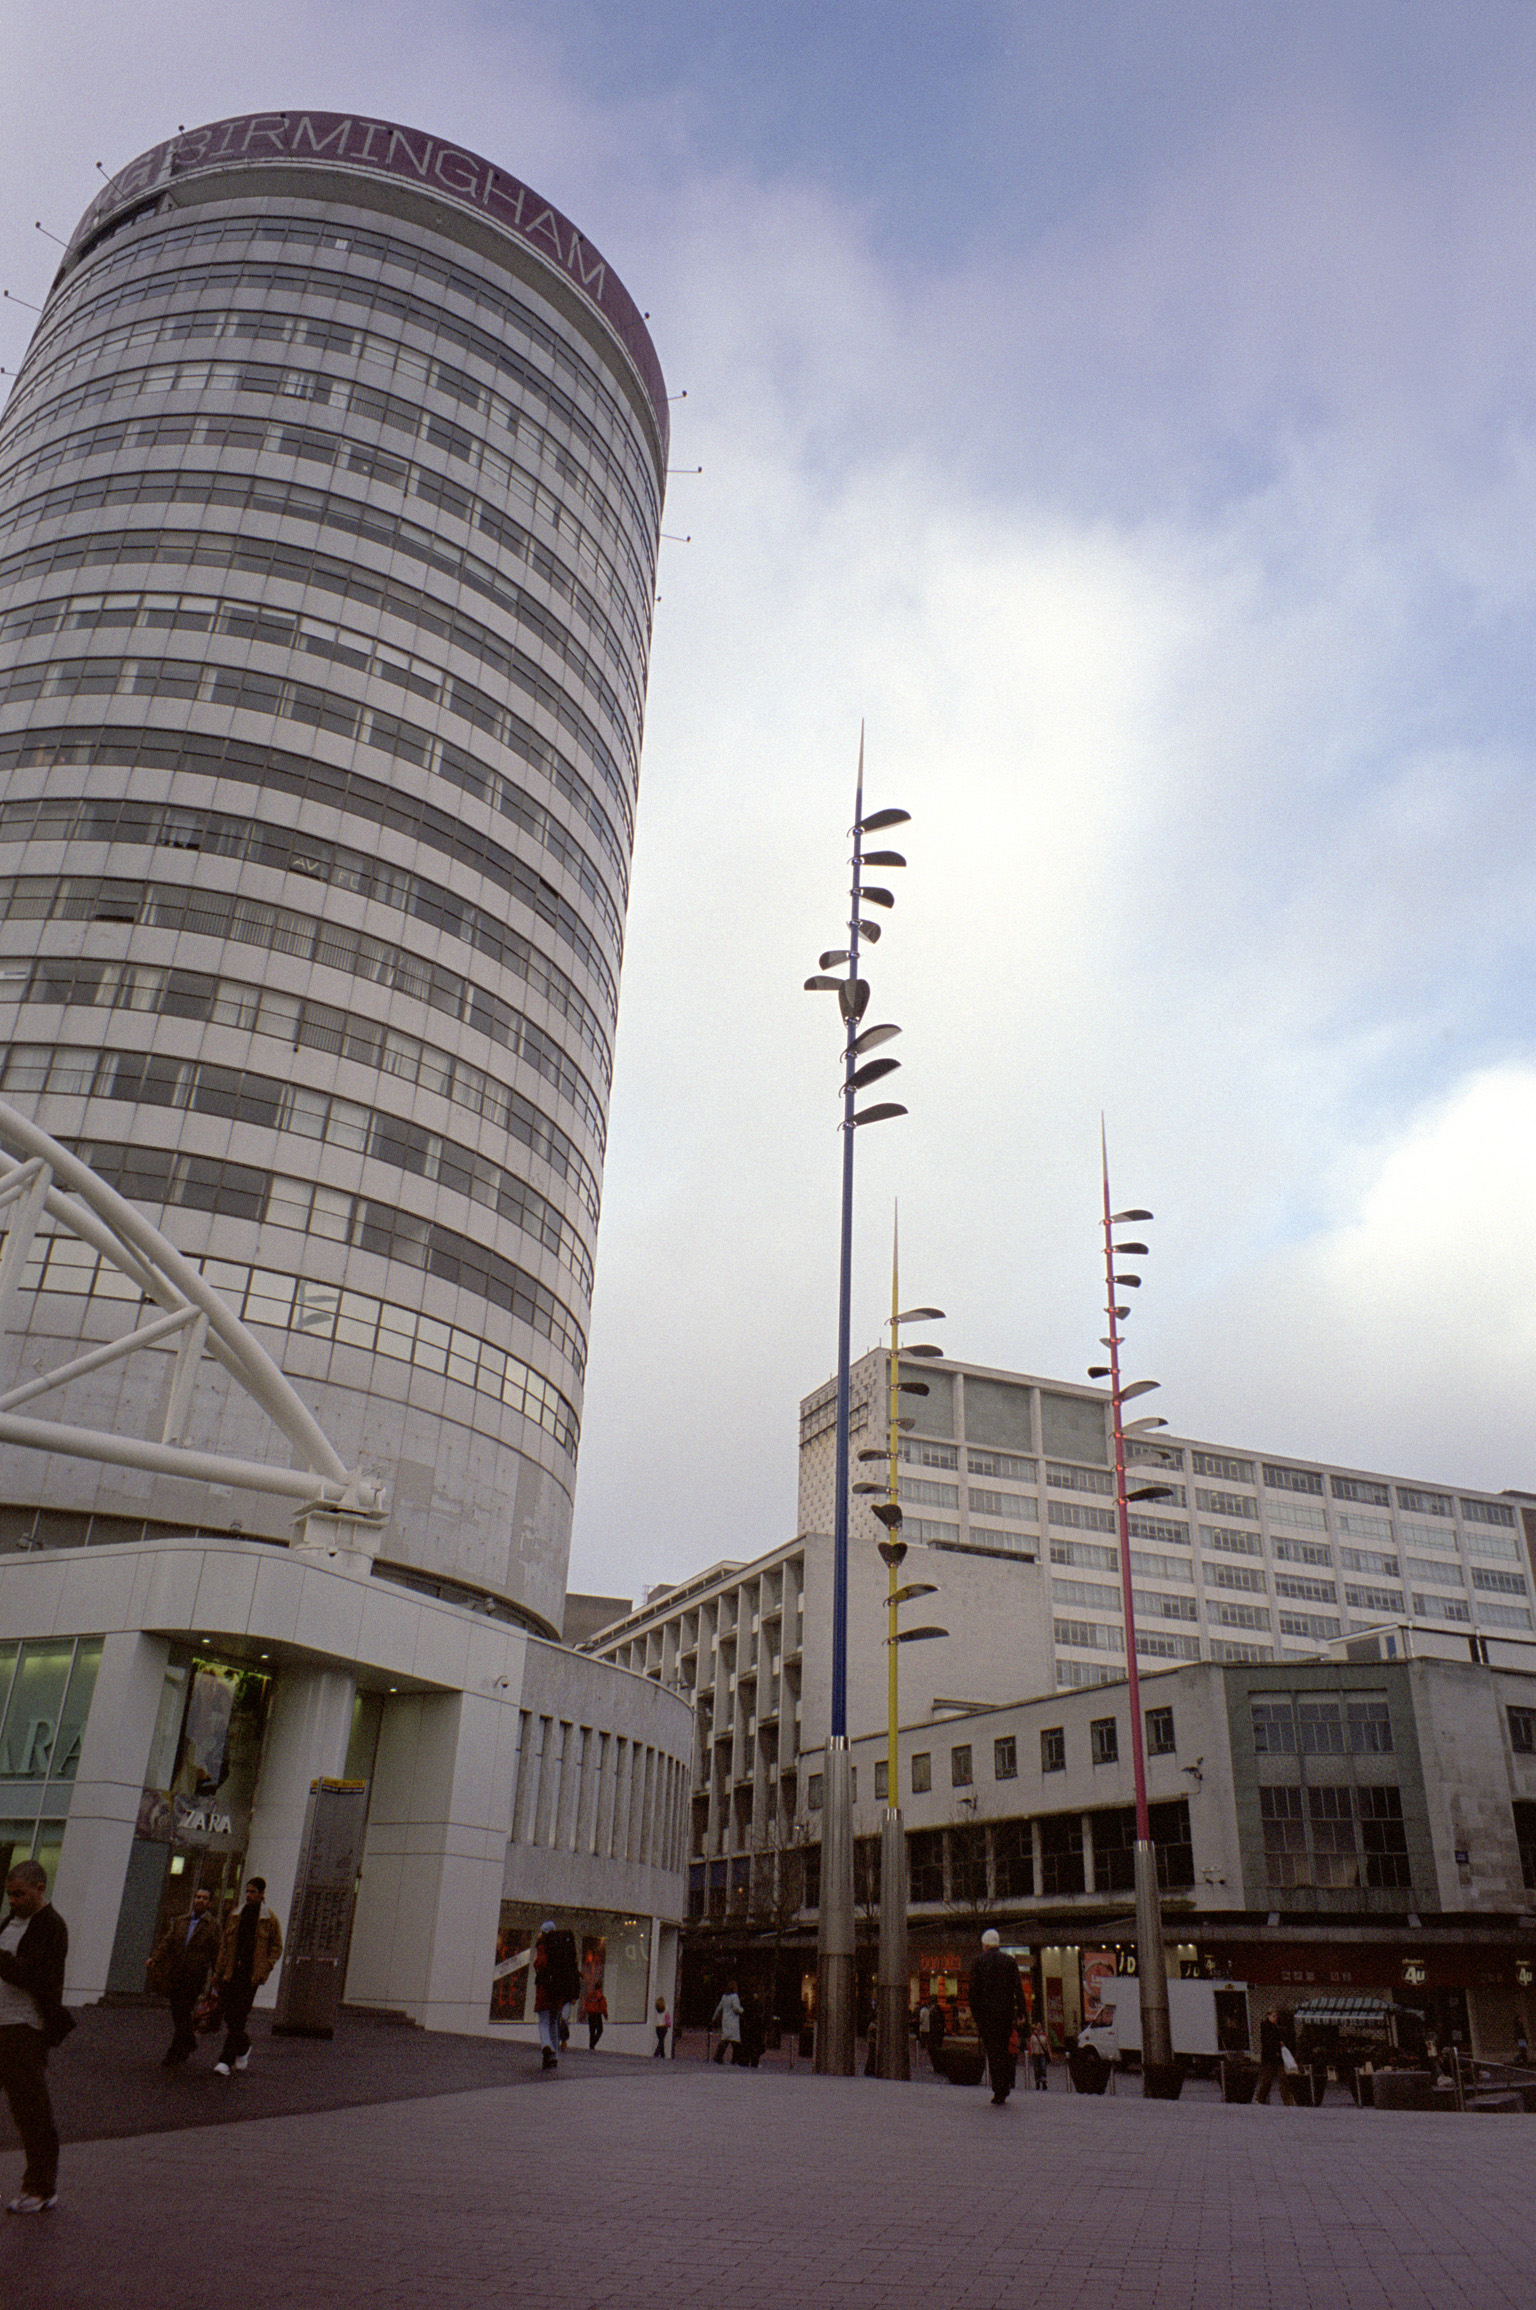 Famous Cylindrical Highrise Rotunda Commercial Building in Birmingham, England.